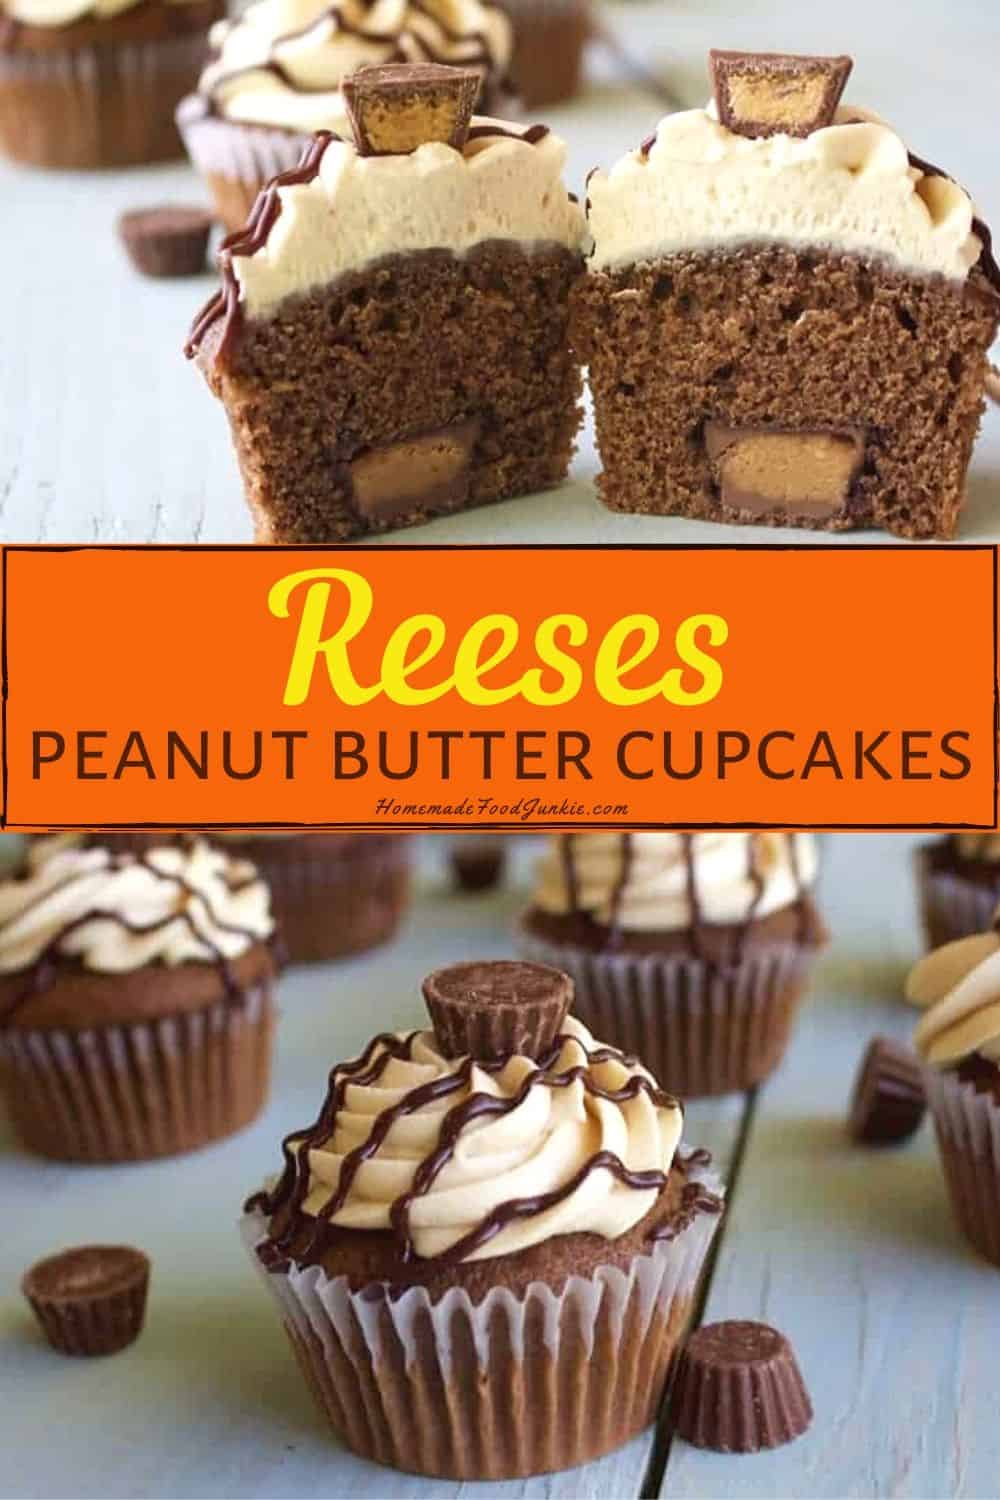 Reeses peanut butter cupcakes-pin image